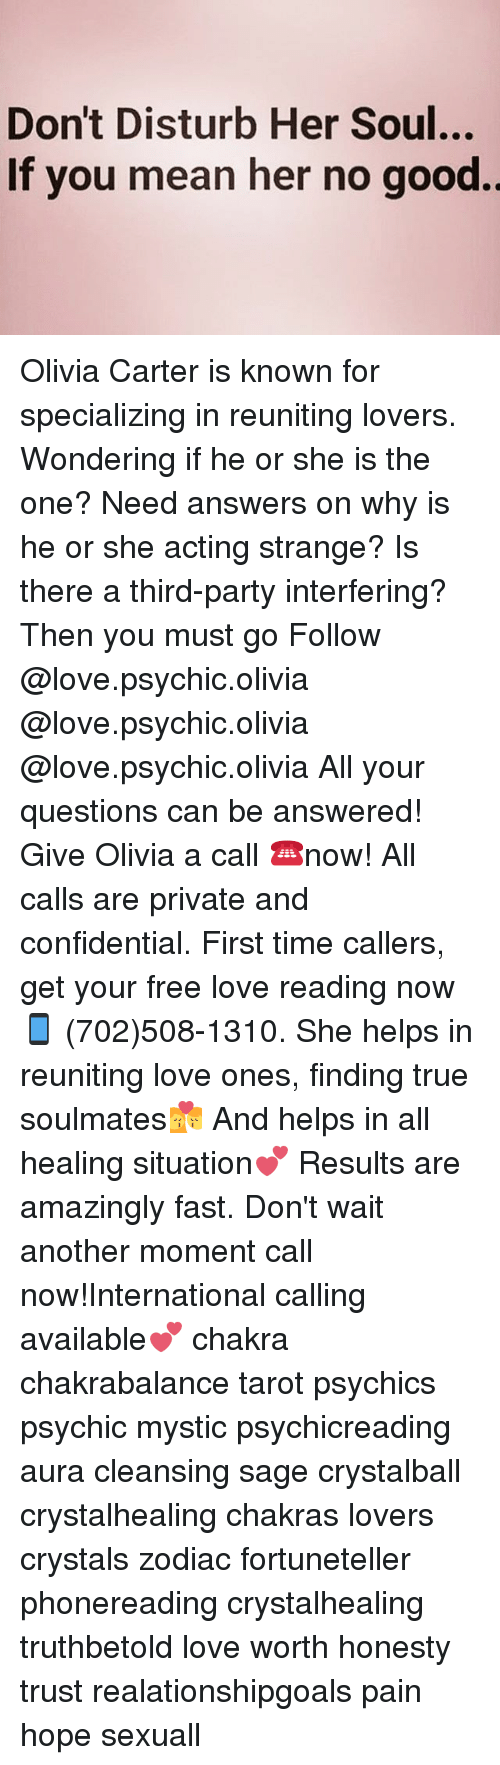 Saged: Don't Disturb Her Soul...  If you mean her no good. Olivia Carter is known for specializing in reuniting lovers. Wondering if he or she is the one? Need answers on why is he or she acting strange? Is there a third-party interfering? Then you must go Follow @love.psychic.olivia @love.psychic.olivia @love.psychic.olivia All your questions can be answered! Give Olivia a call ☎️now! All calls are private and confidential. First time callers, get your free love reading now 📱 (702)508-1310. She helps in reuniting love ones, finding true soulmates💏 And helps in all healing situation💕 Results are amazingly fast. Don't wait another moment call now!International calling available💕 chakra chakrabalance tarot psychics psychic mystic psychicreading aura cleansing sage crystalball crystalhealing chakras lovers crystals zodiac fortuneteller phonereading crystalhealing truthbetold love worth honesty trust realationshipgoals pain hope sexuall